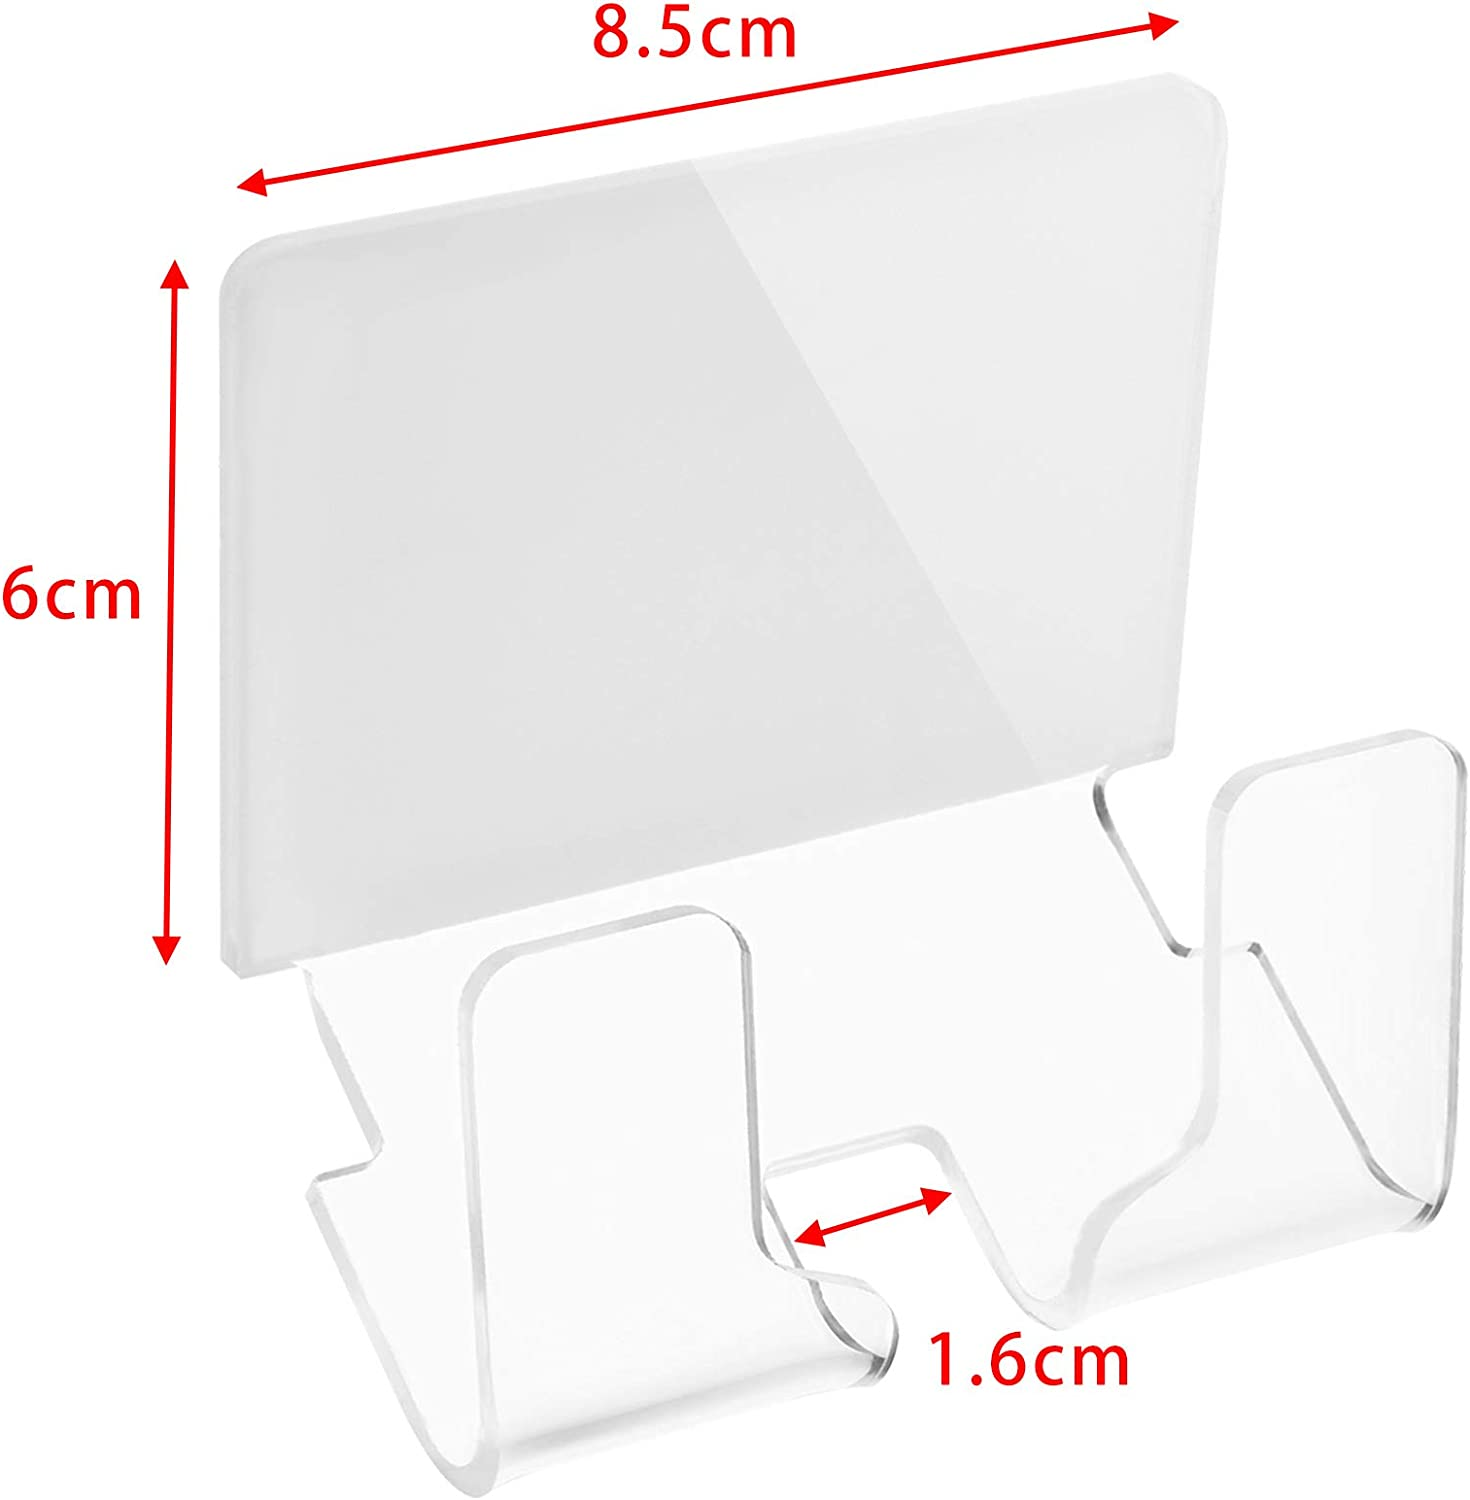 Clear Bluecell Clear Color Acrylic Home Office Wall-Mounted Charging Dock Bracket Holder Cable Winder for iPad Mobile Phone with Adhesive Tape